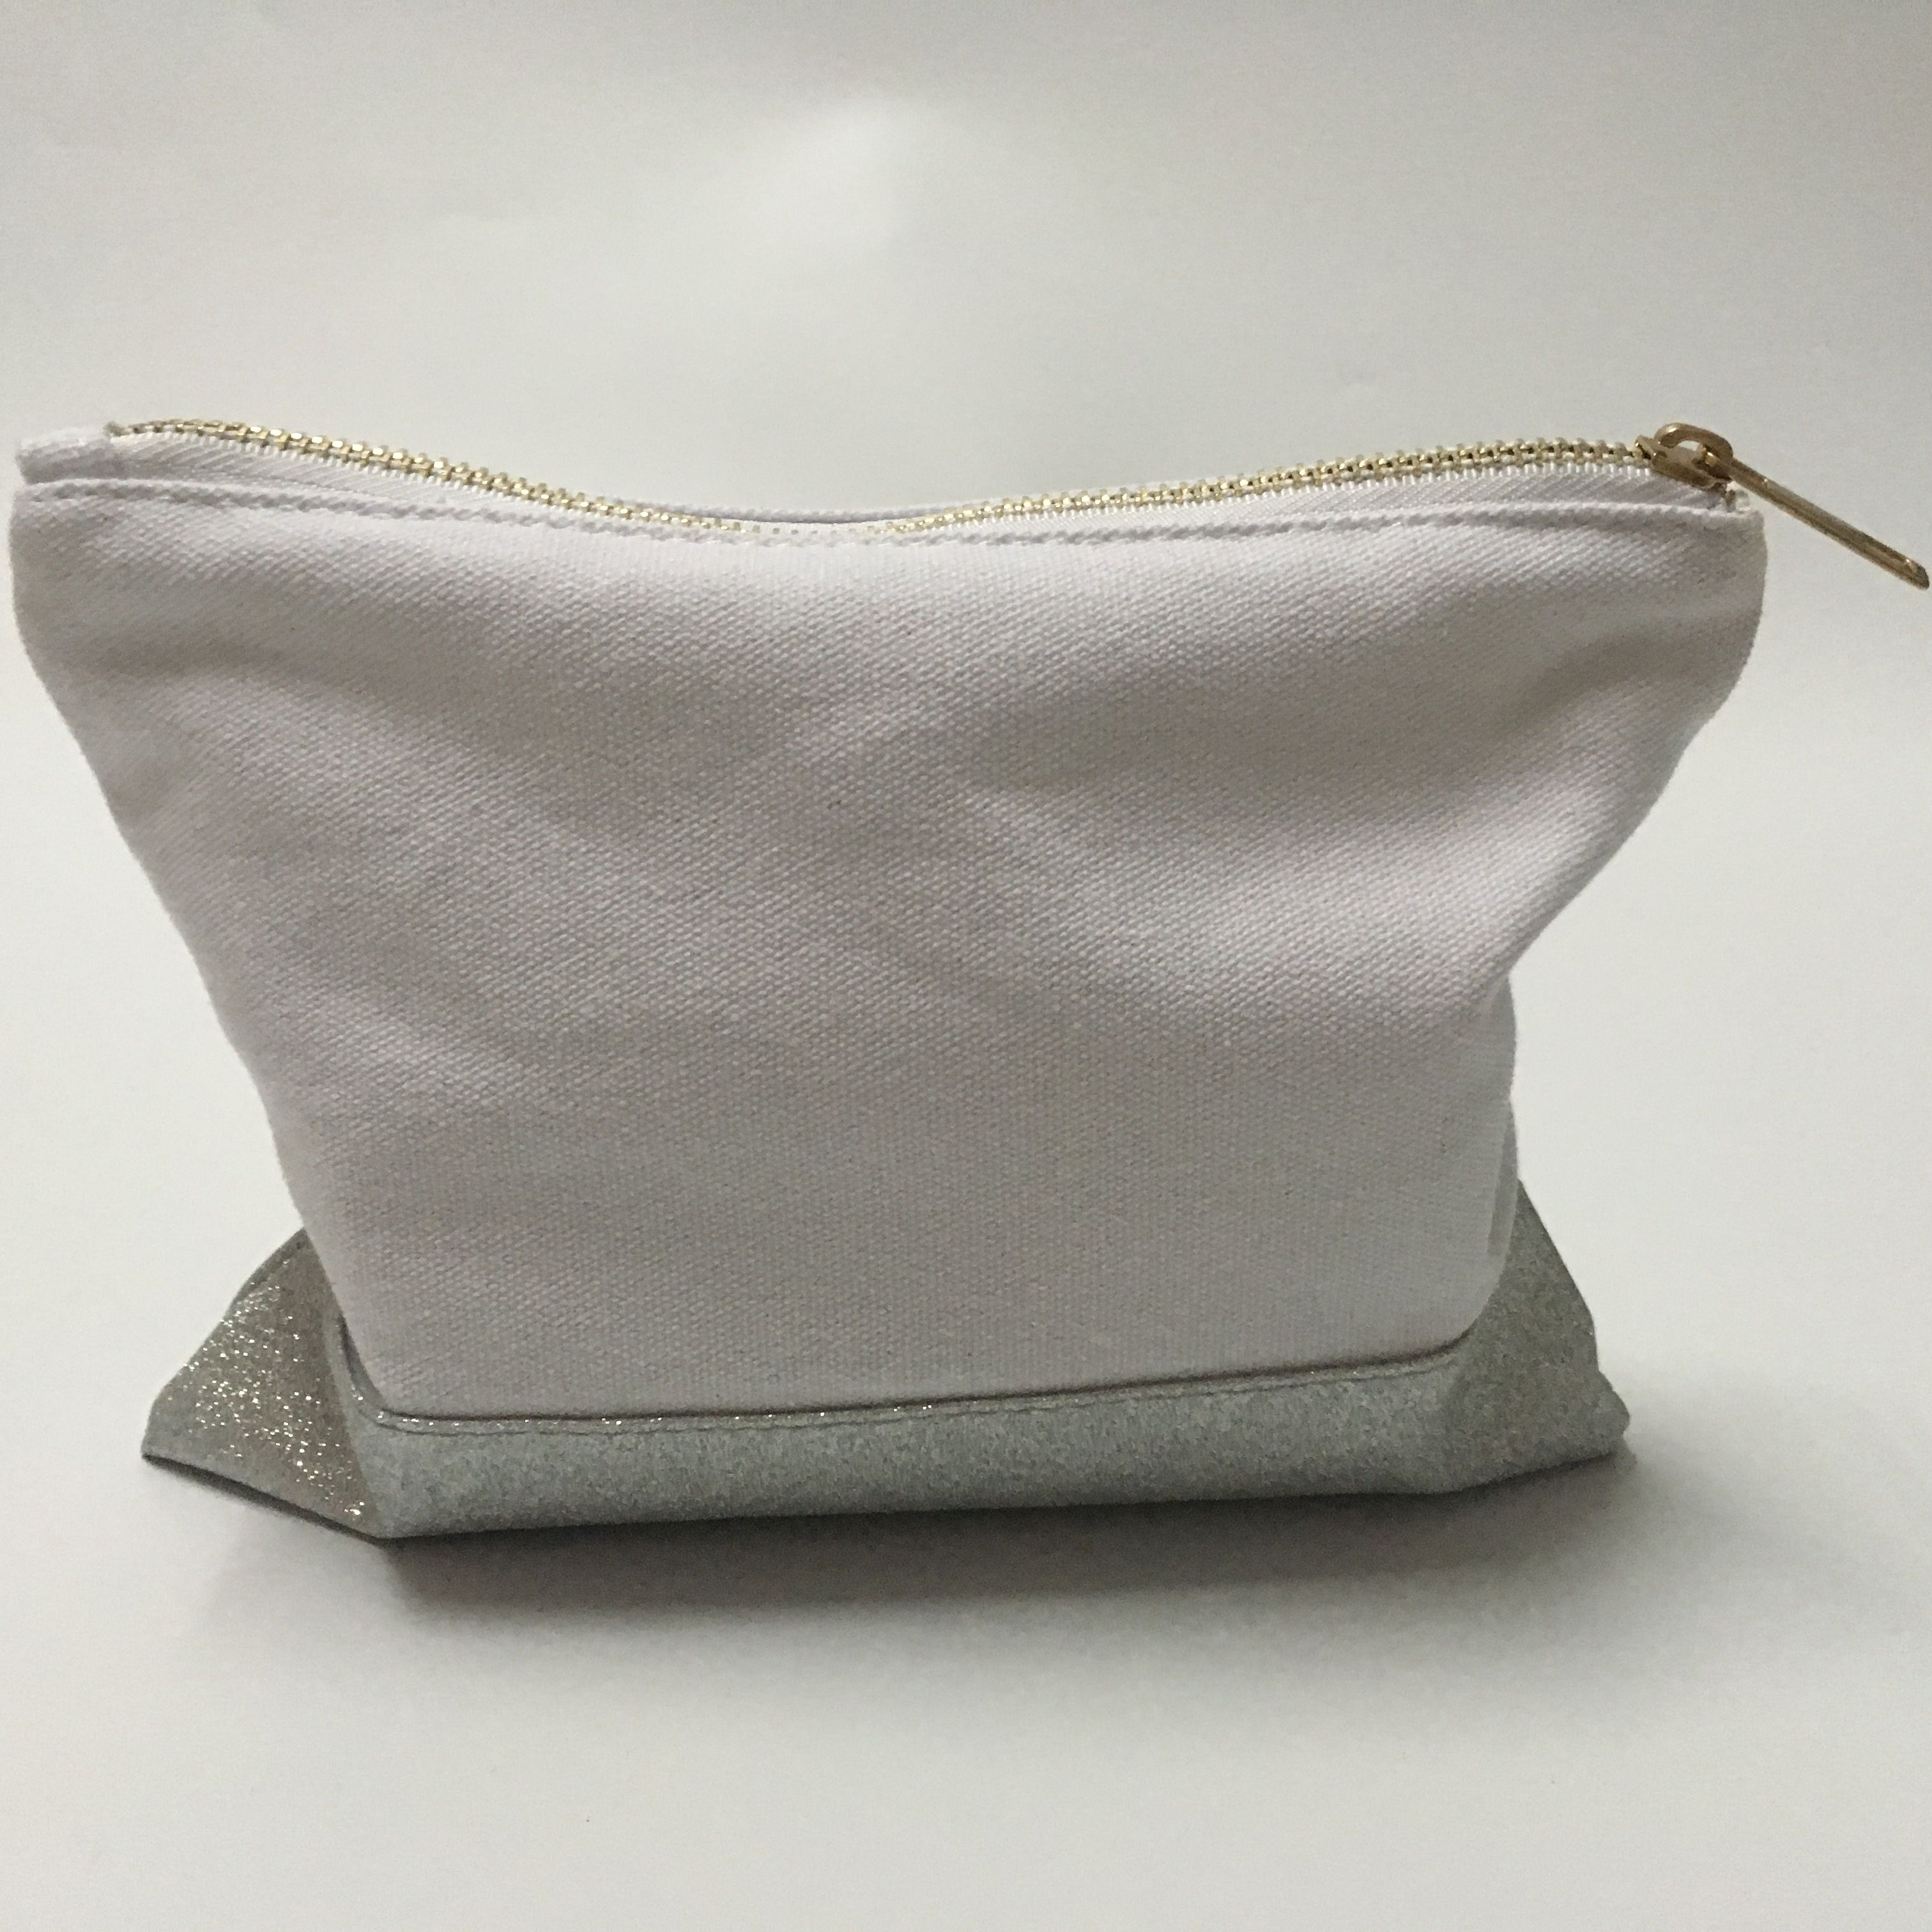 9*7 inch canvas glitter cosmetic bag with different color